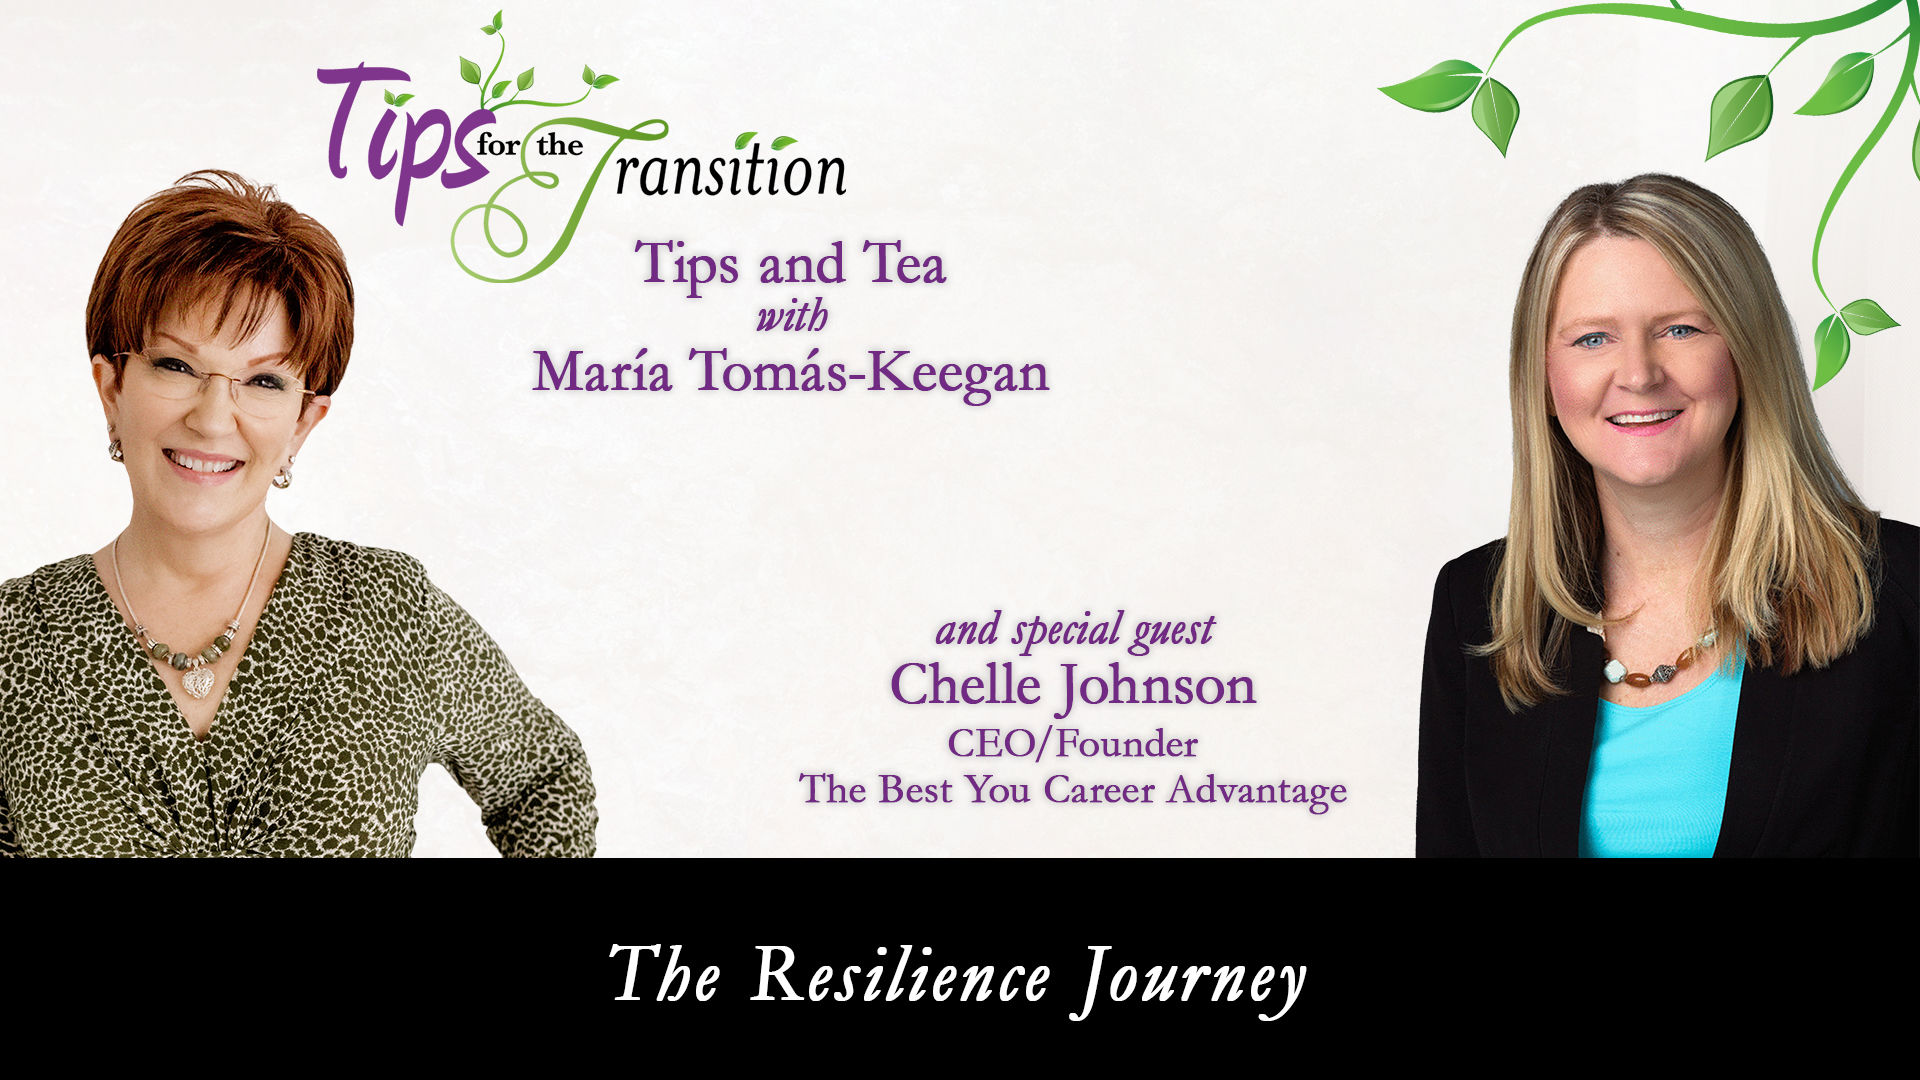 The Resilience Journey